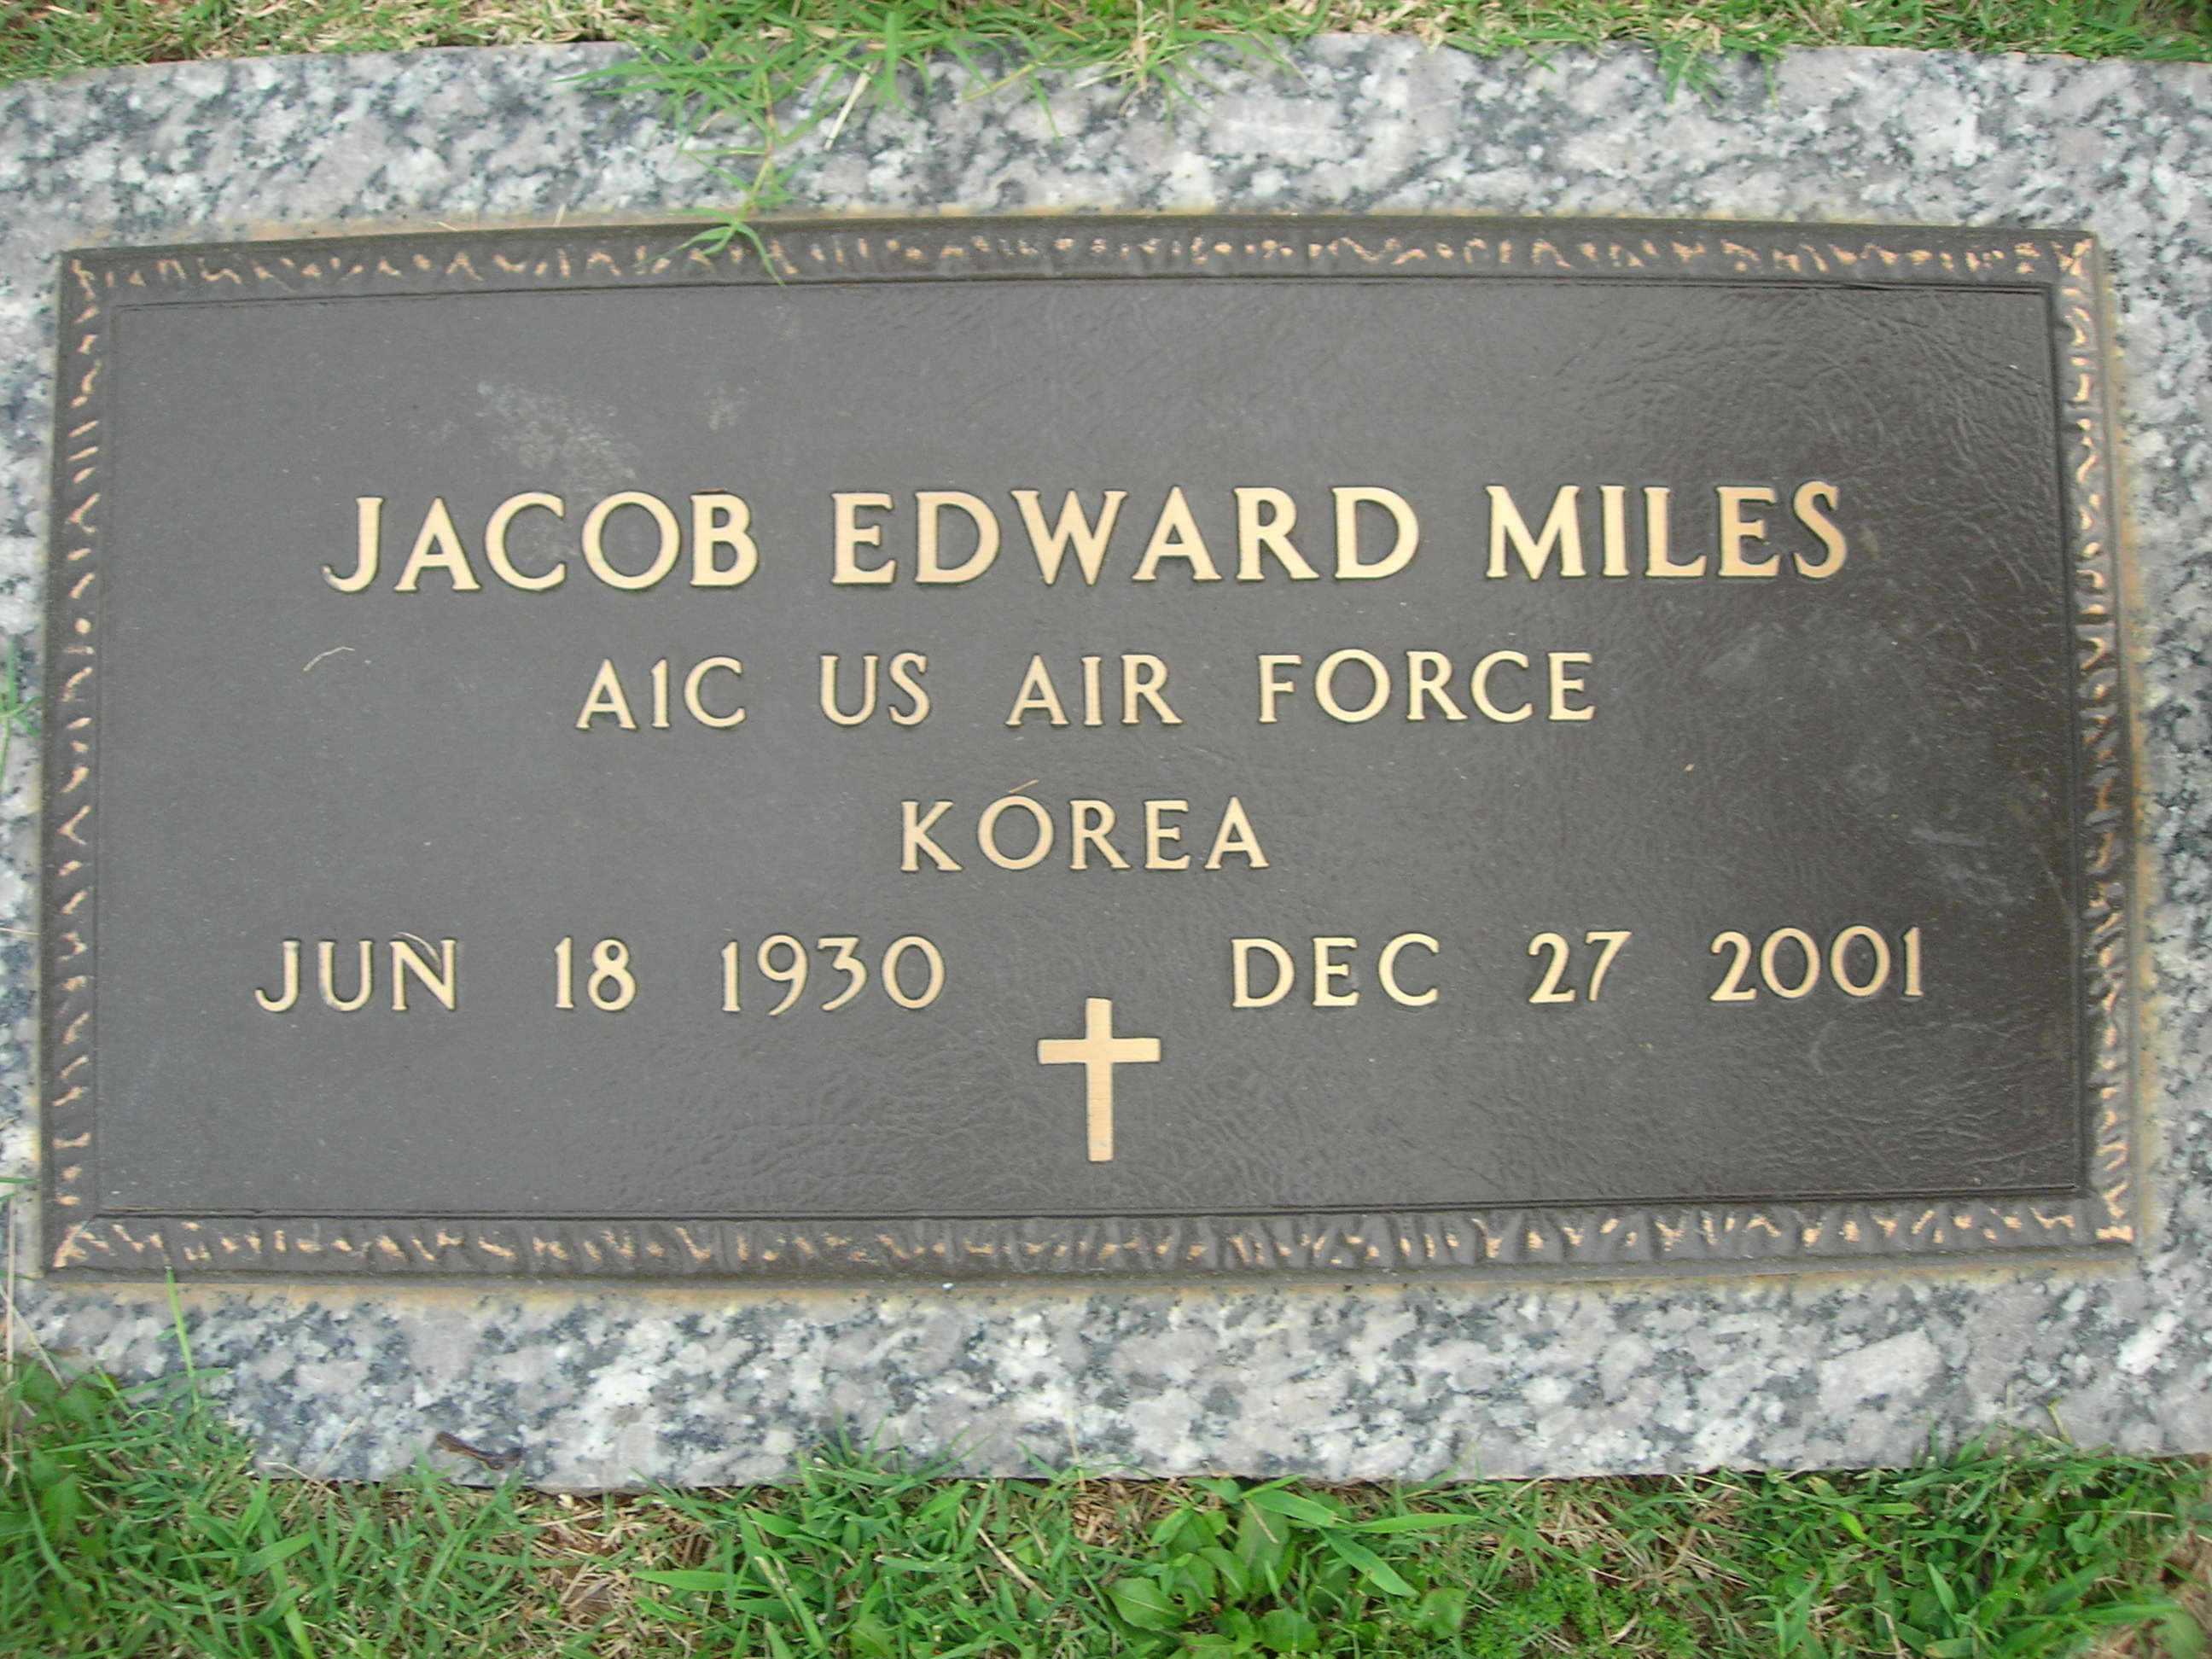 Jacob Edward Miles